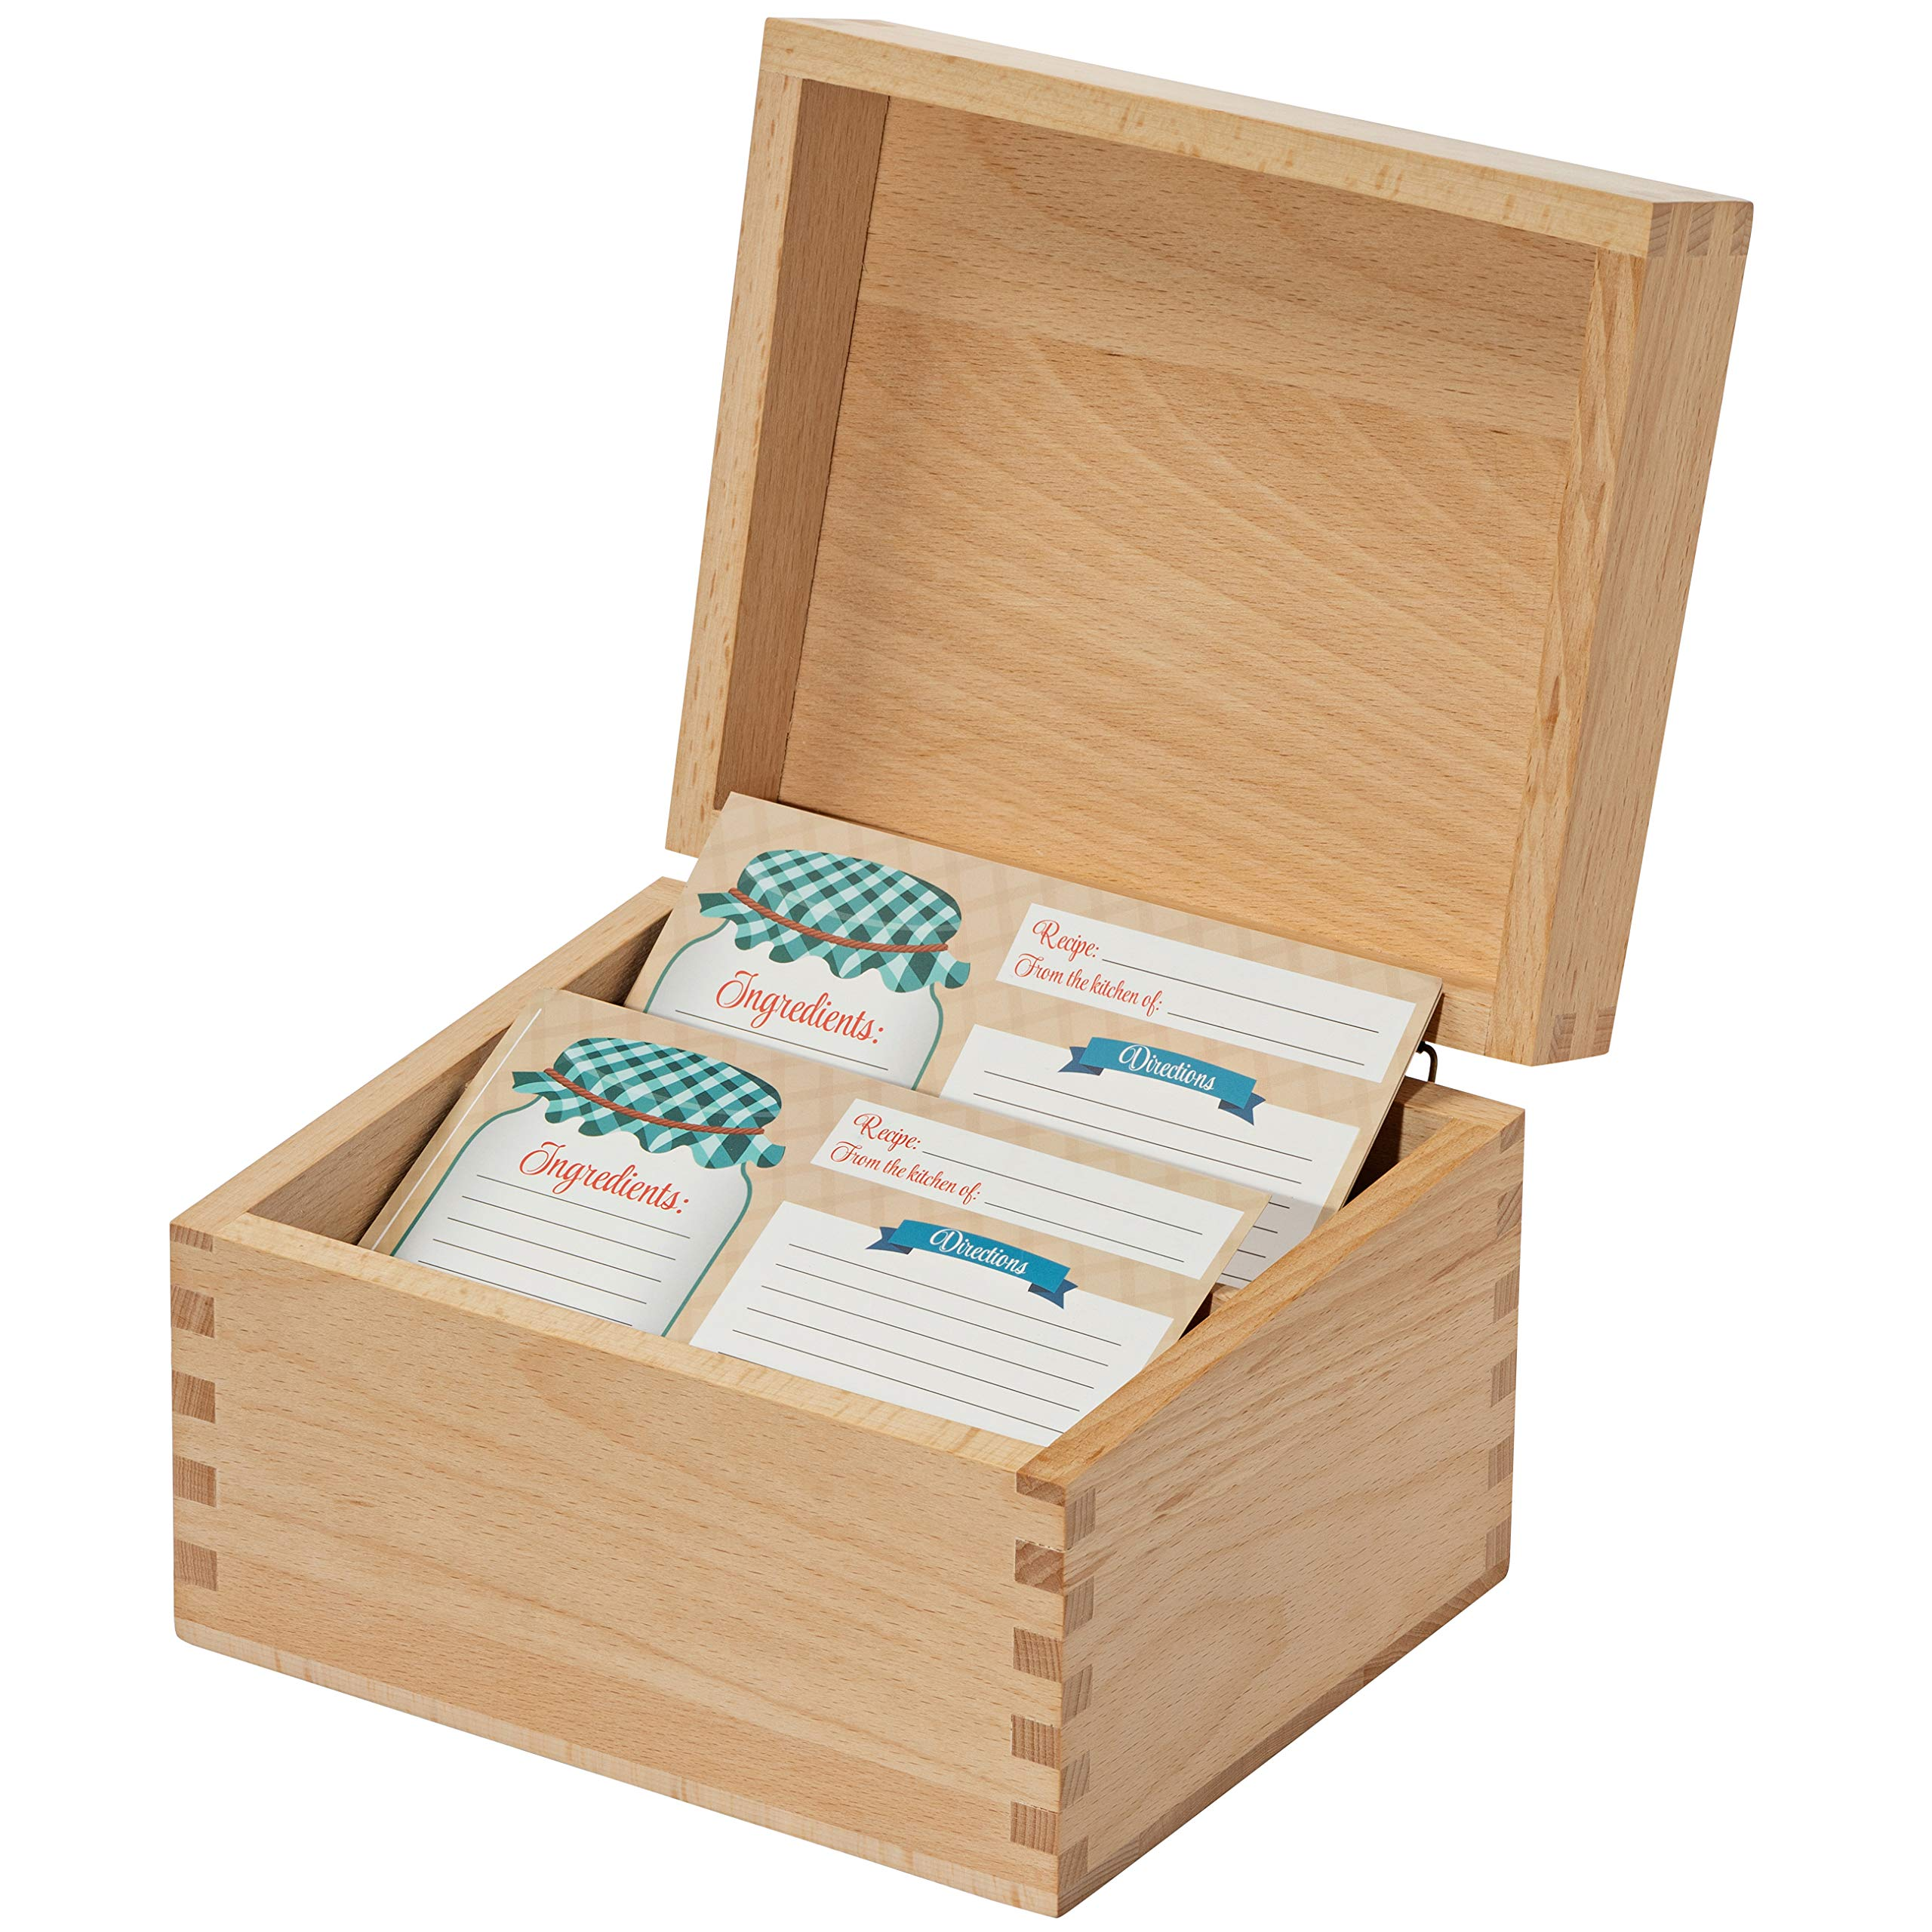 Recipe Box Card Set with 8 4x6 Recipe Cards, Beechwood and Card Holder, Cards Made with Thick Card Stock. Perfect Recipe Organizer. (Beechwood) by RAKYTO (Image #1)